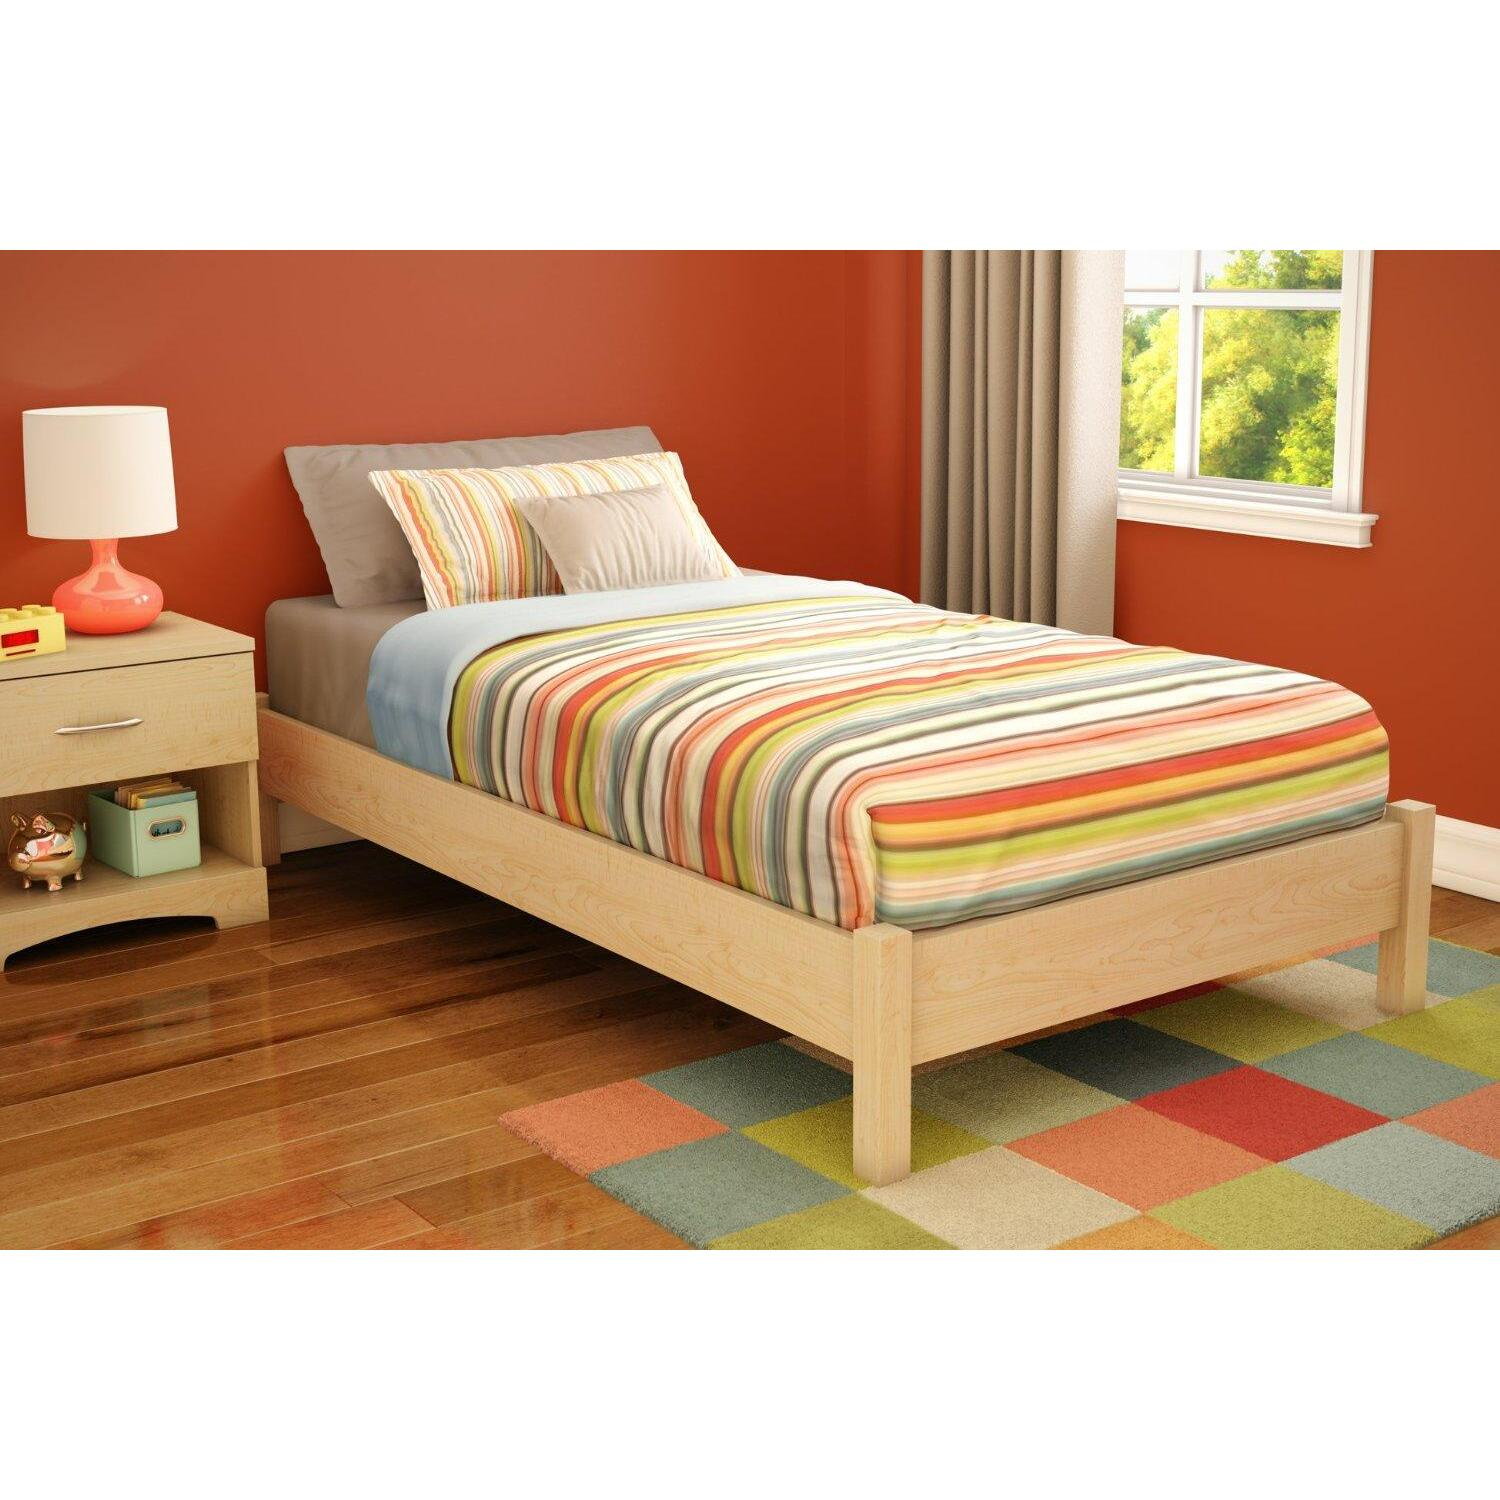 "South Shore Twin Platform Bed (39"") by OJ Commerce 3013205 - $149.99"